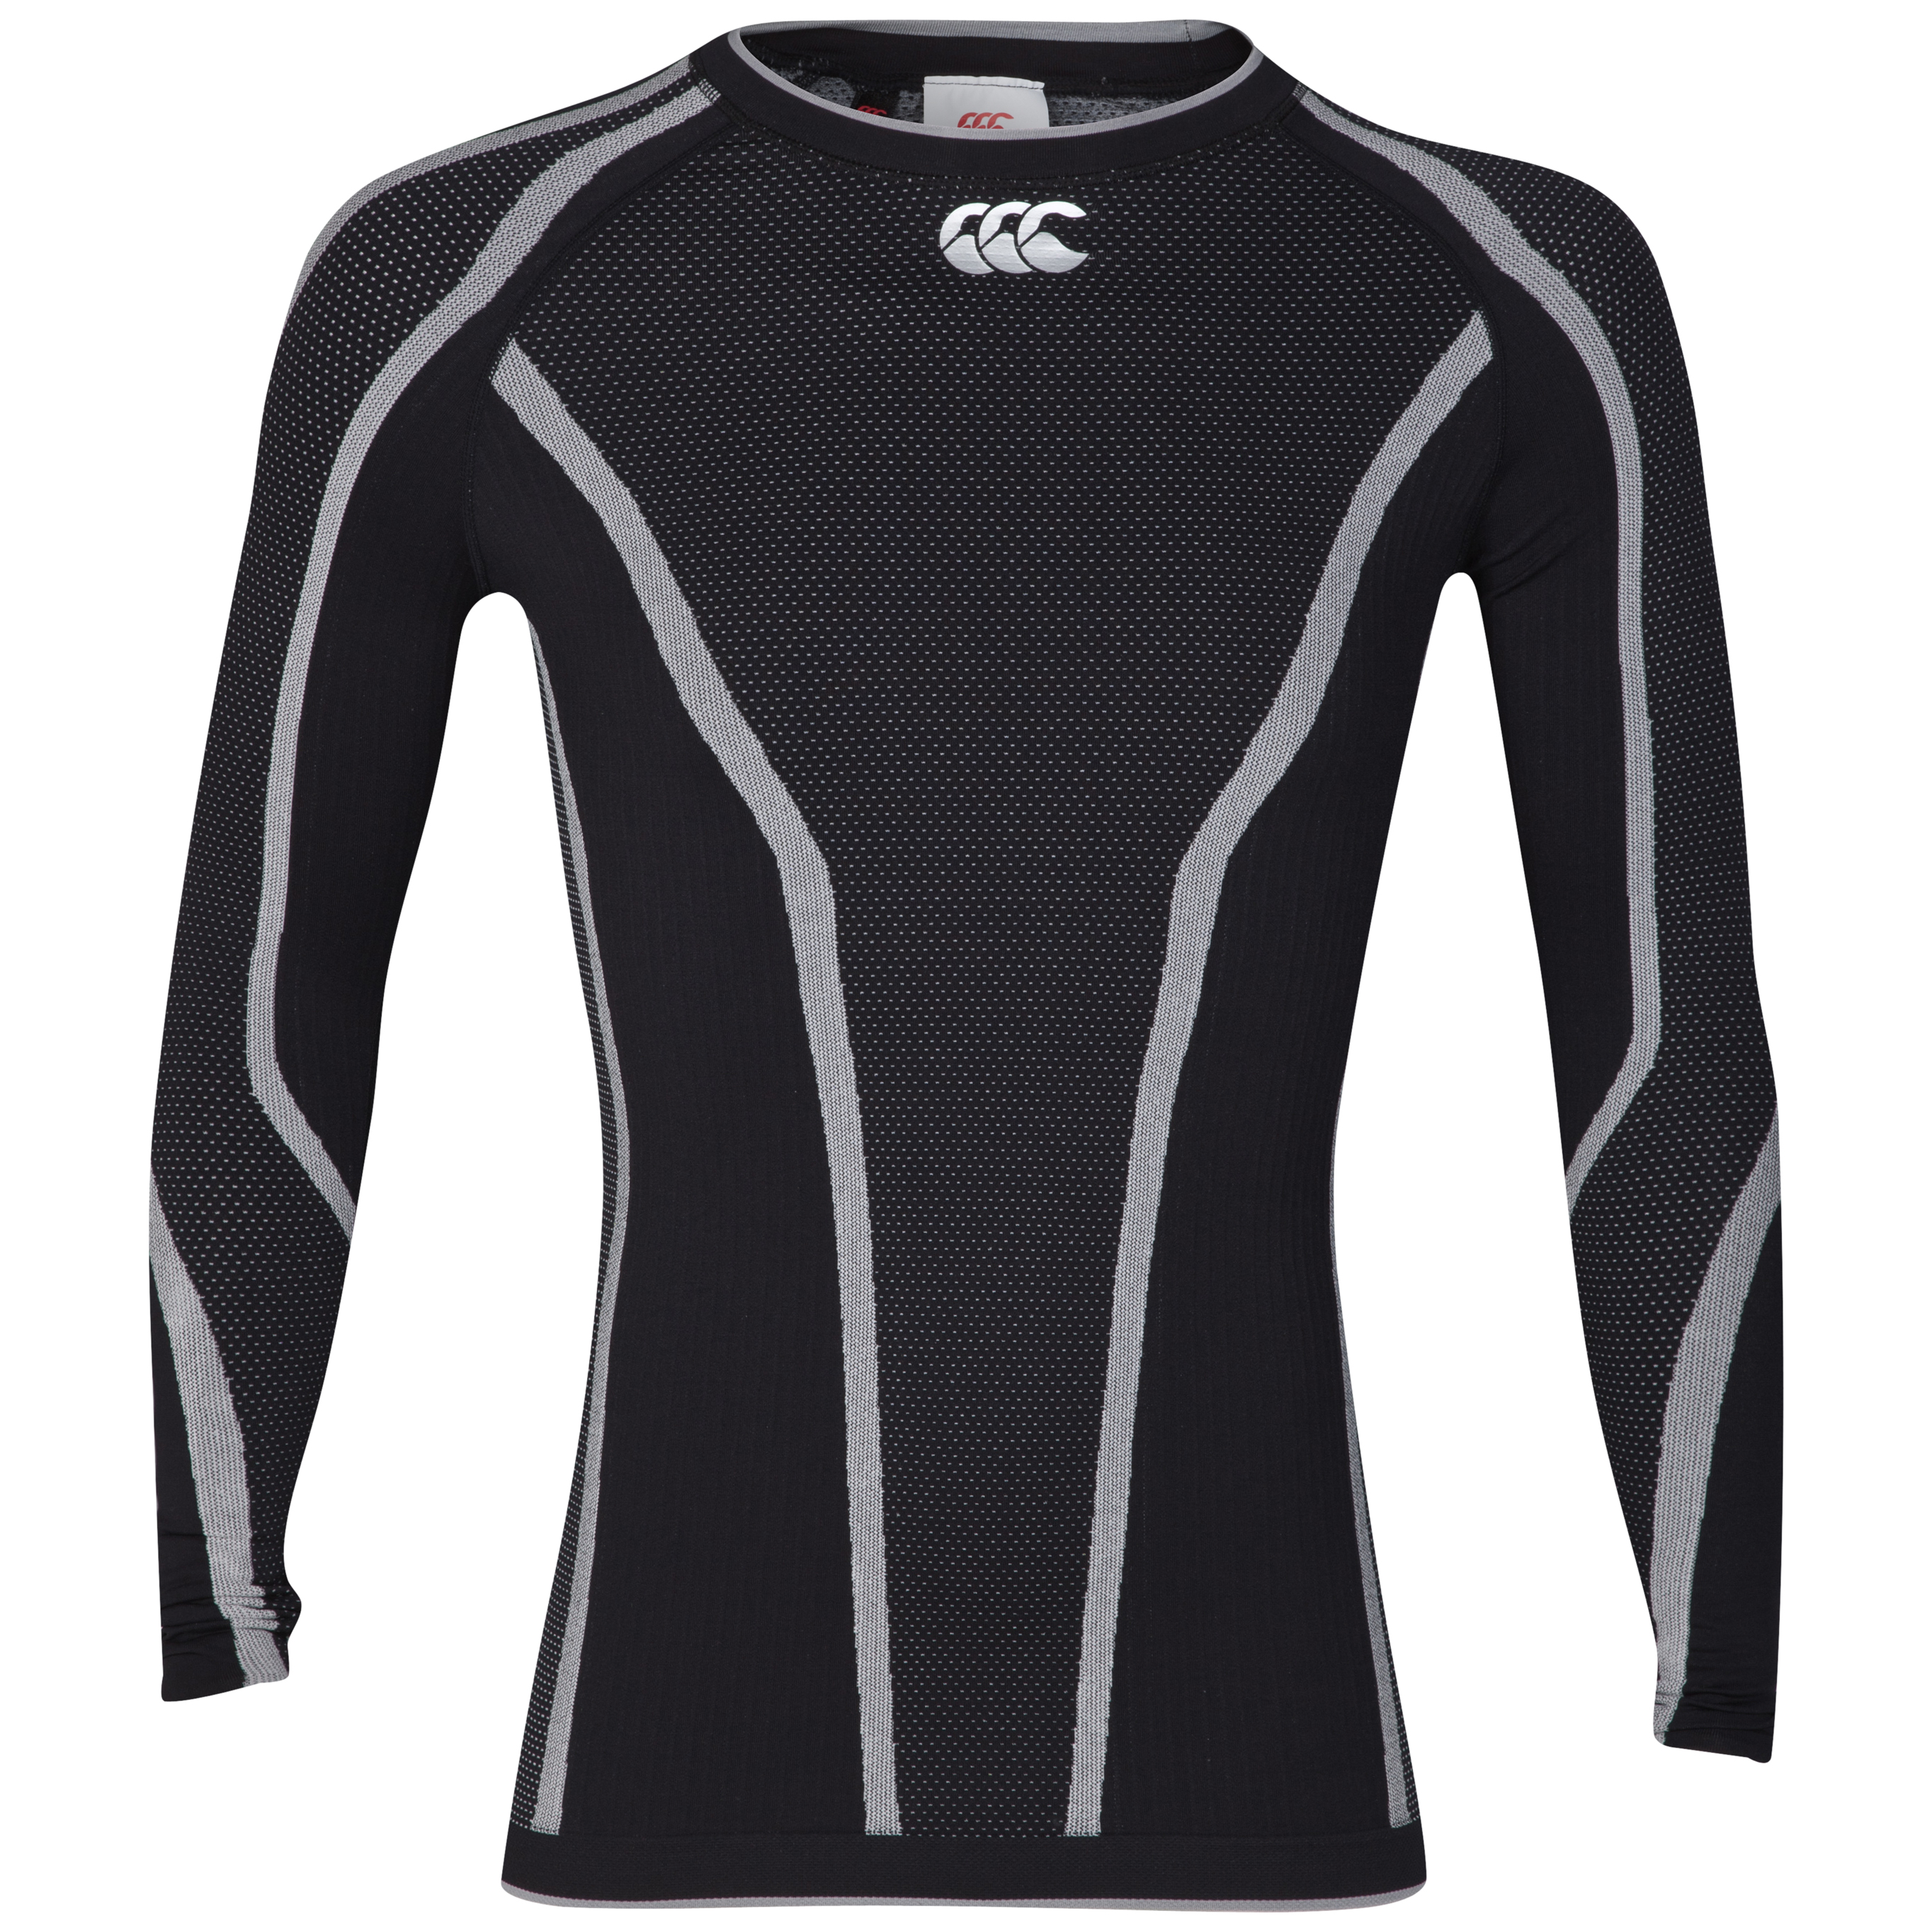 Canterbury iD Top - Long Sleeve - Black/White